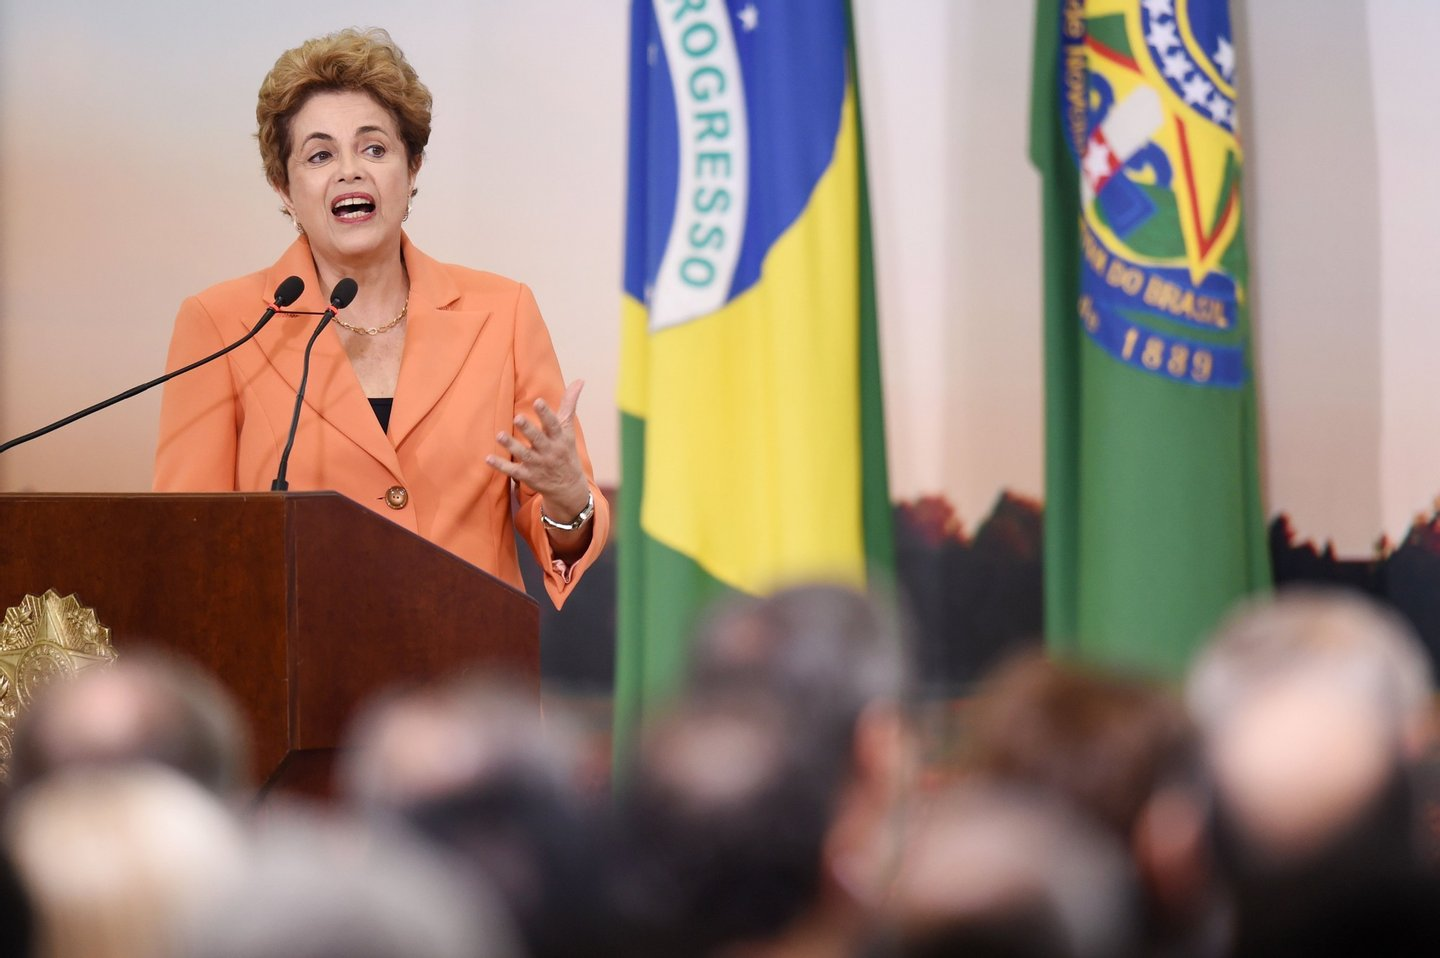 Brazilian President Dilma Rousseff delivers a speech during the launching of the Agricultural and Livestock Plan for 2016/2017, at Planalto Palace in Brasilia, on May 4, 2016. Rousseff is fighting impeachment on allegations that she illegally borrowed money to boost public spending during her 2014 re-election campaign. / AFP / EVARISTO SA (Photo credit should read EVARISTO SA/AFP/Getty Images)